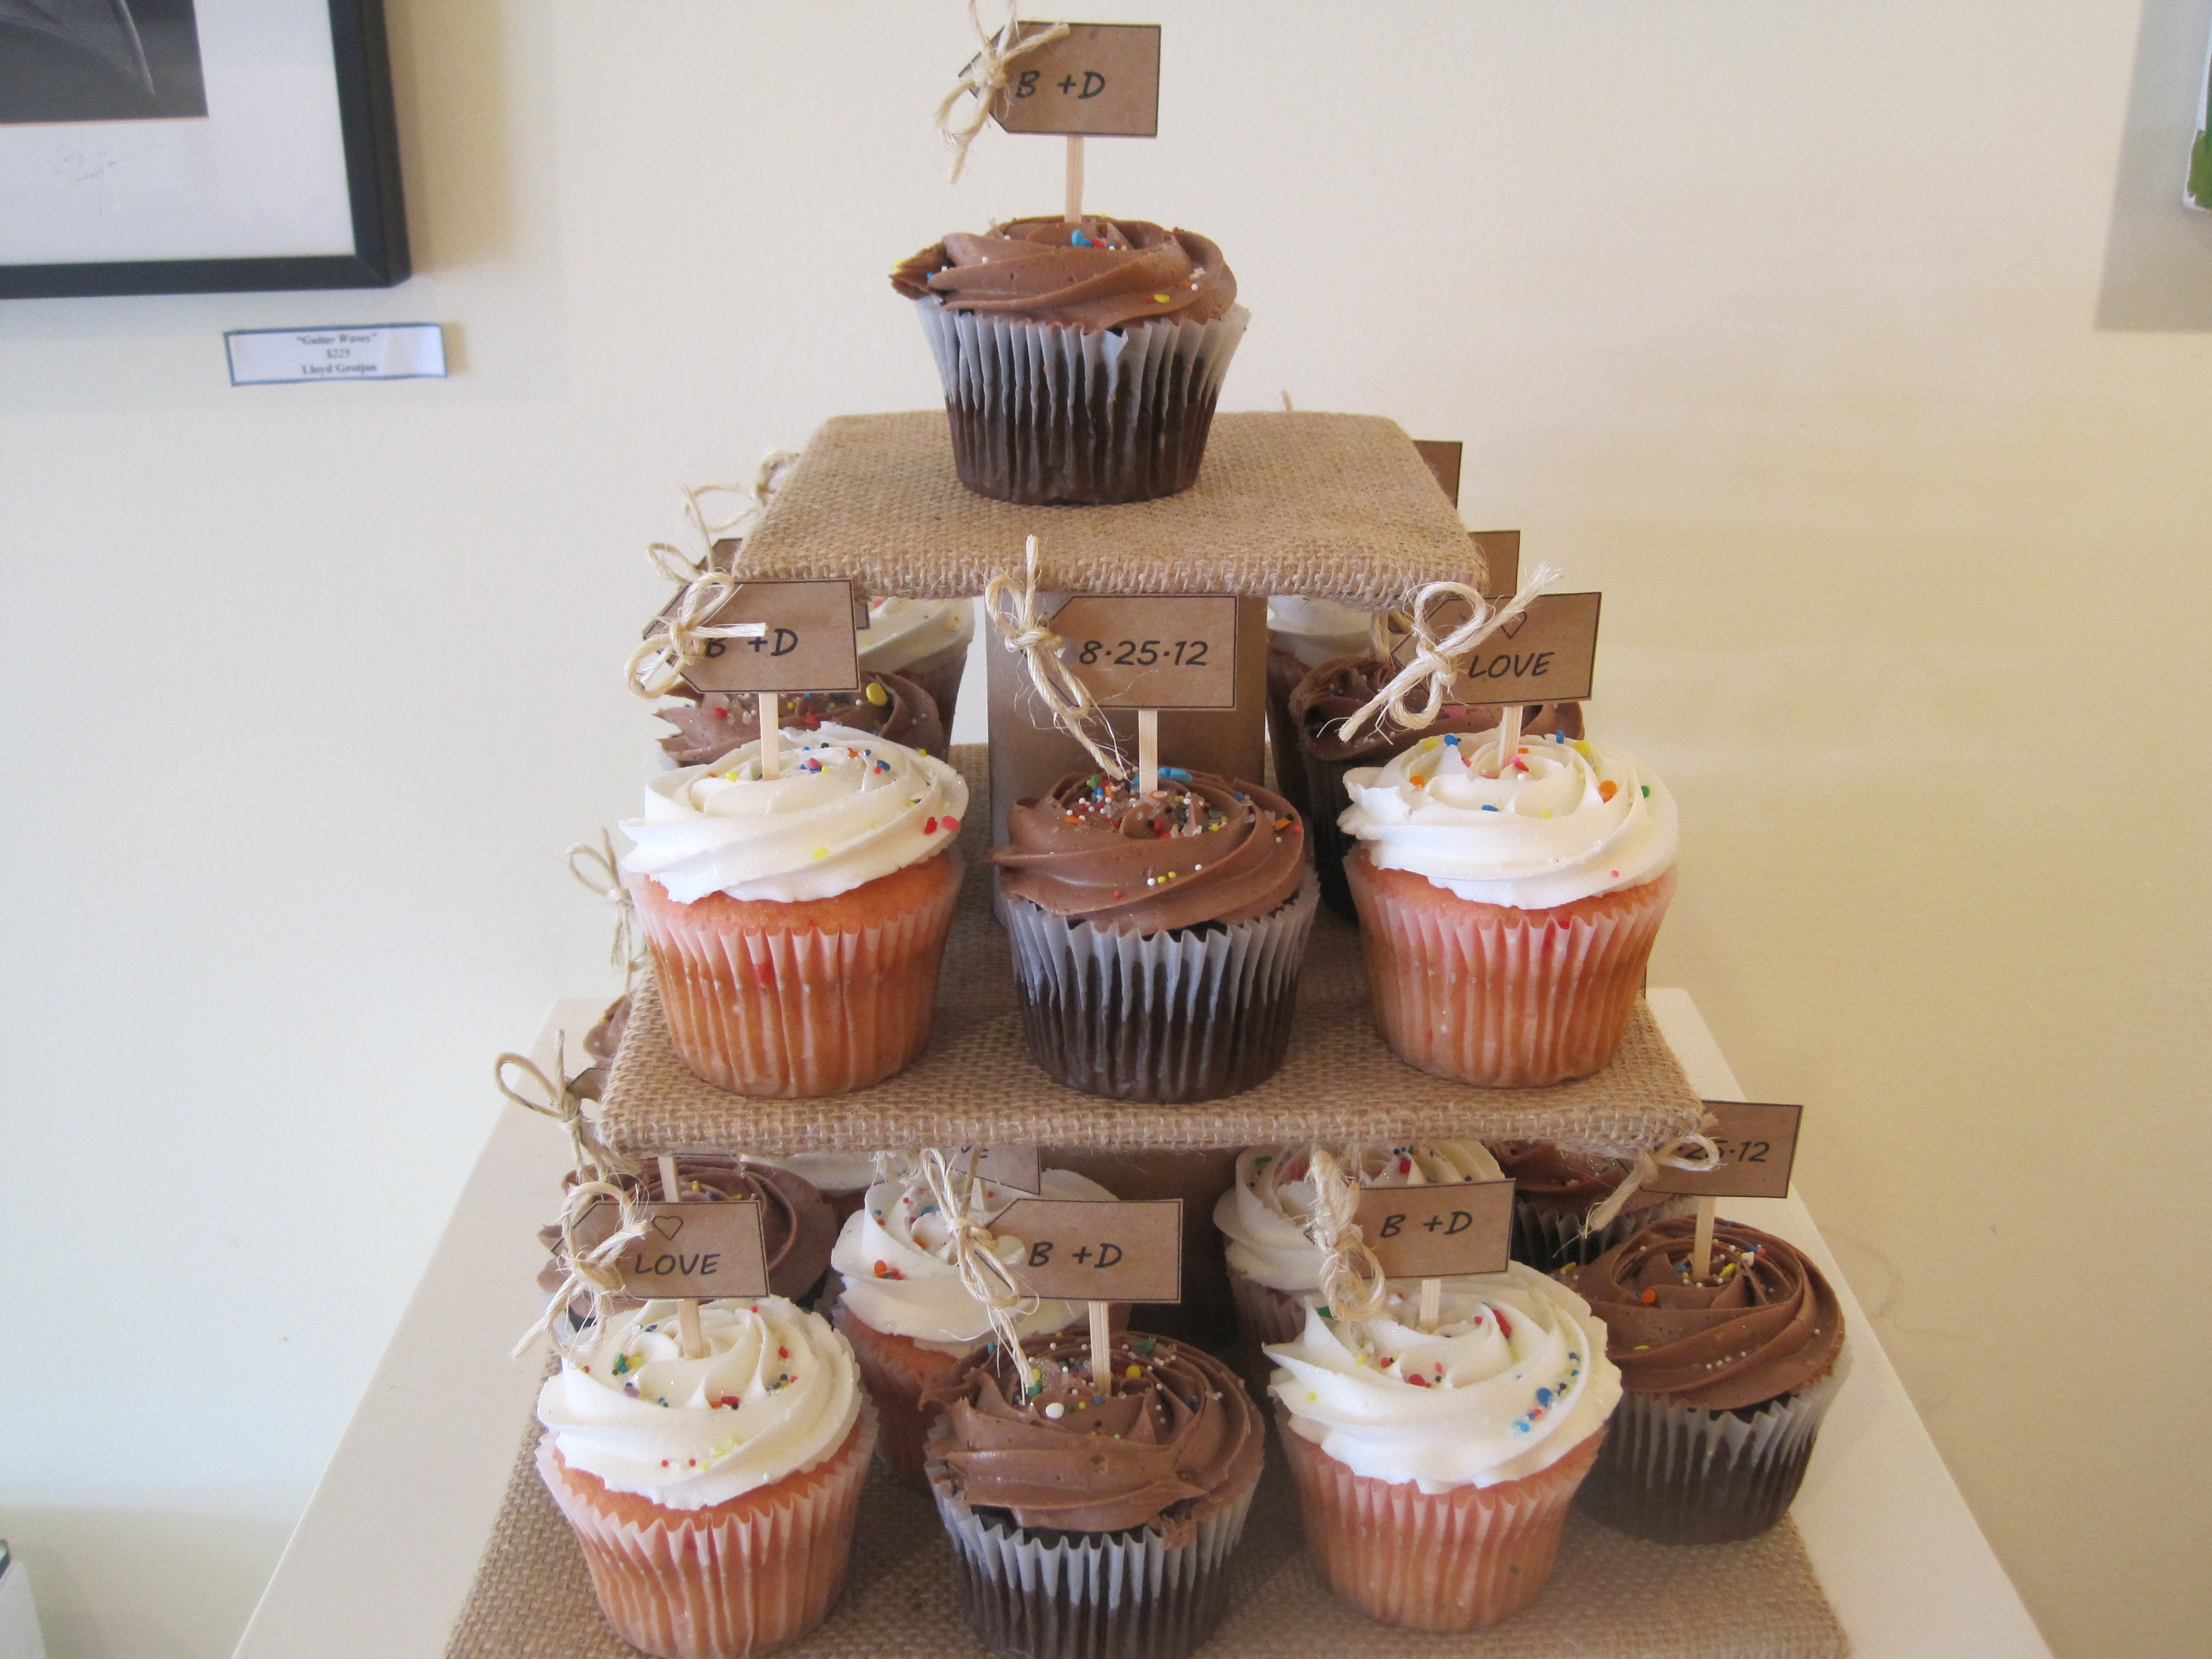 25 DIY Cupcake Stands with Instructions